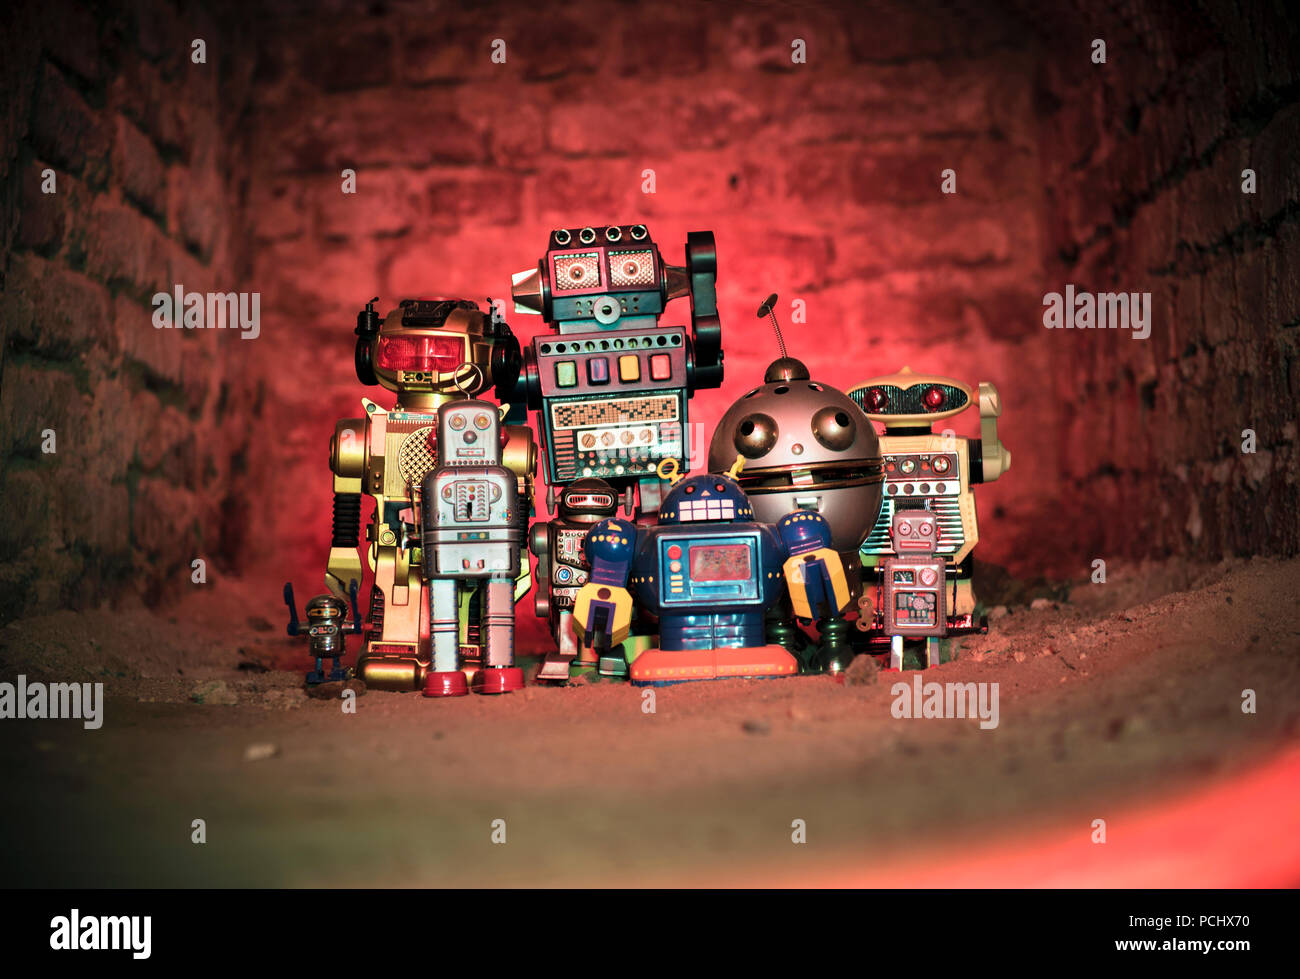 toy,robot,science fiction - Stock Image